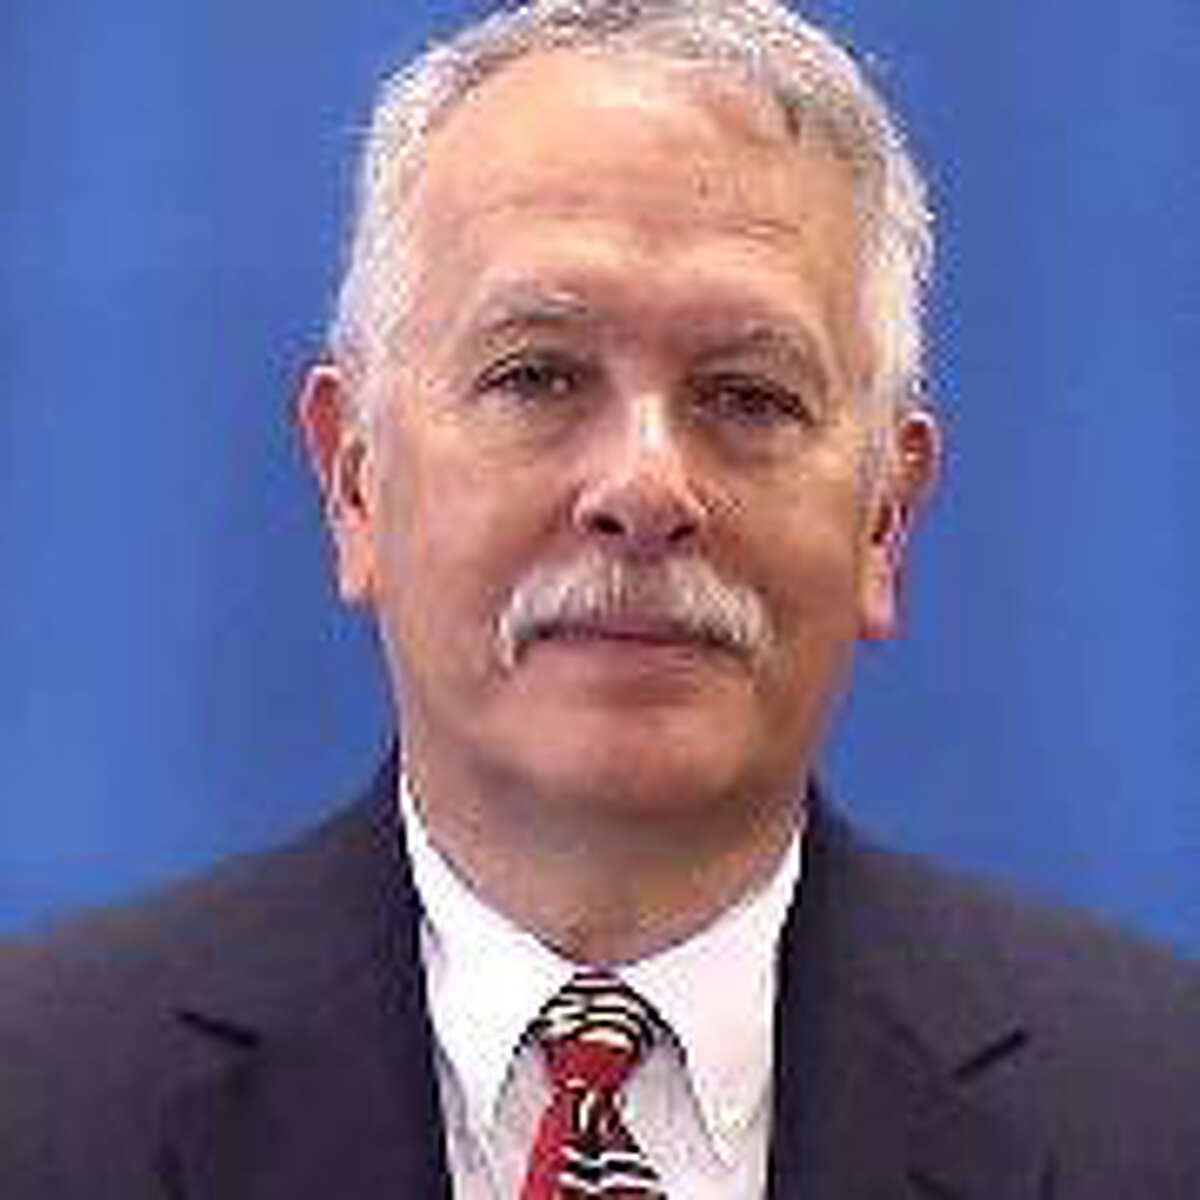 Dr Carl Carlucci, University of Houston's administraion and finance chief is the subject of ongoing audits is now stepping down as of Wednesday, April 15, 2015. Carlucci will remain at UH as a faculty member in the College of Liberal Arts and Social Sciences.